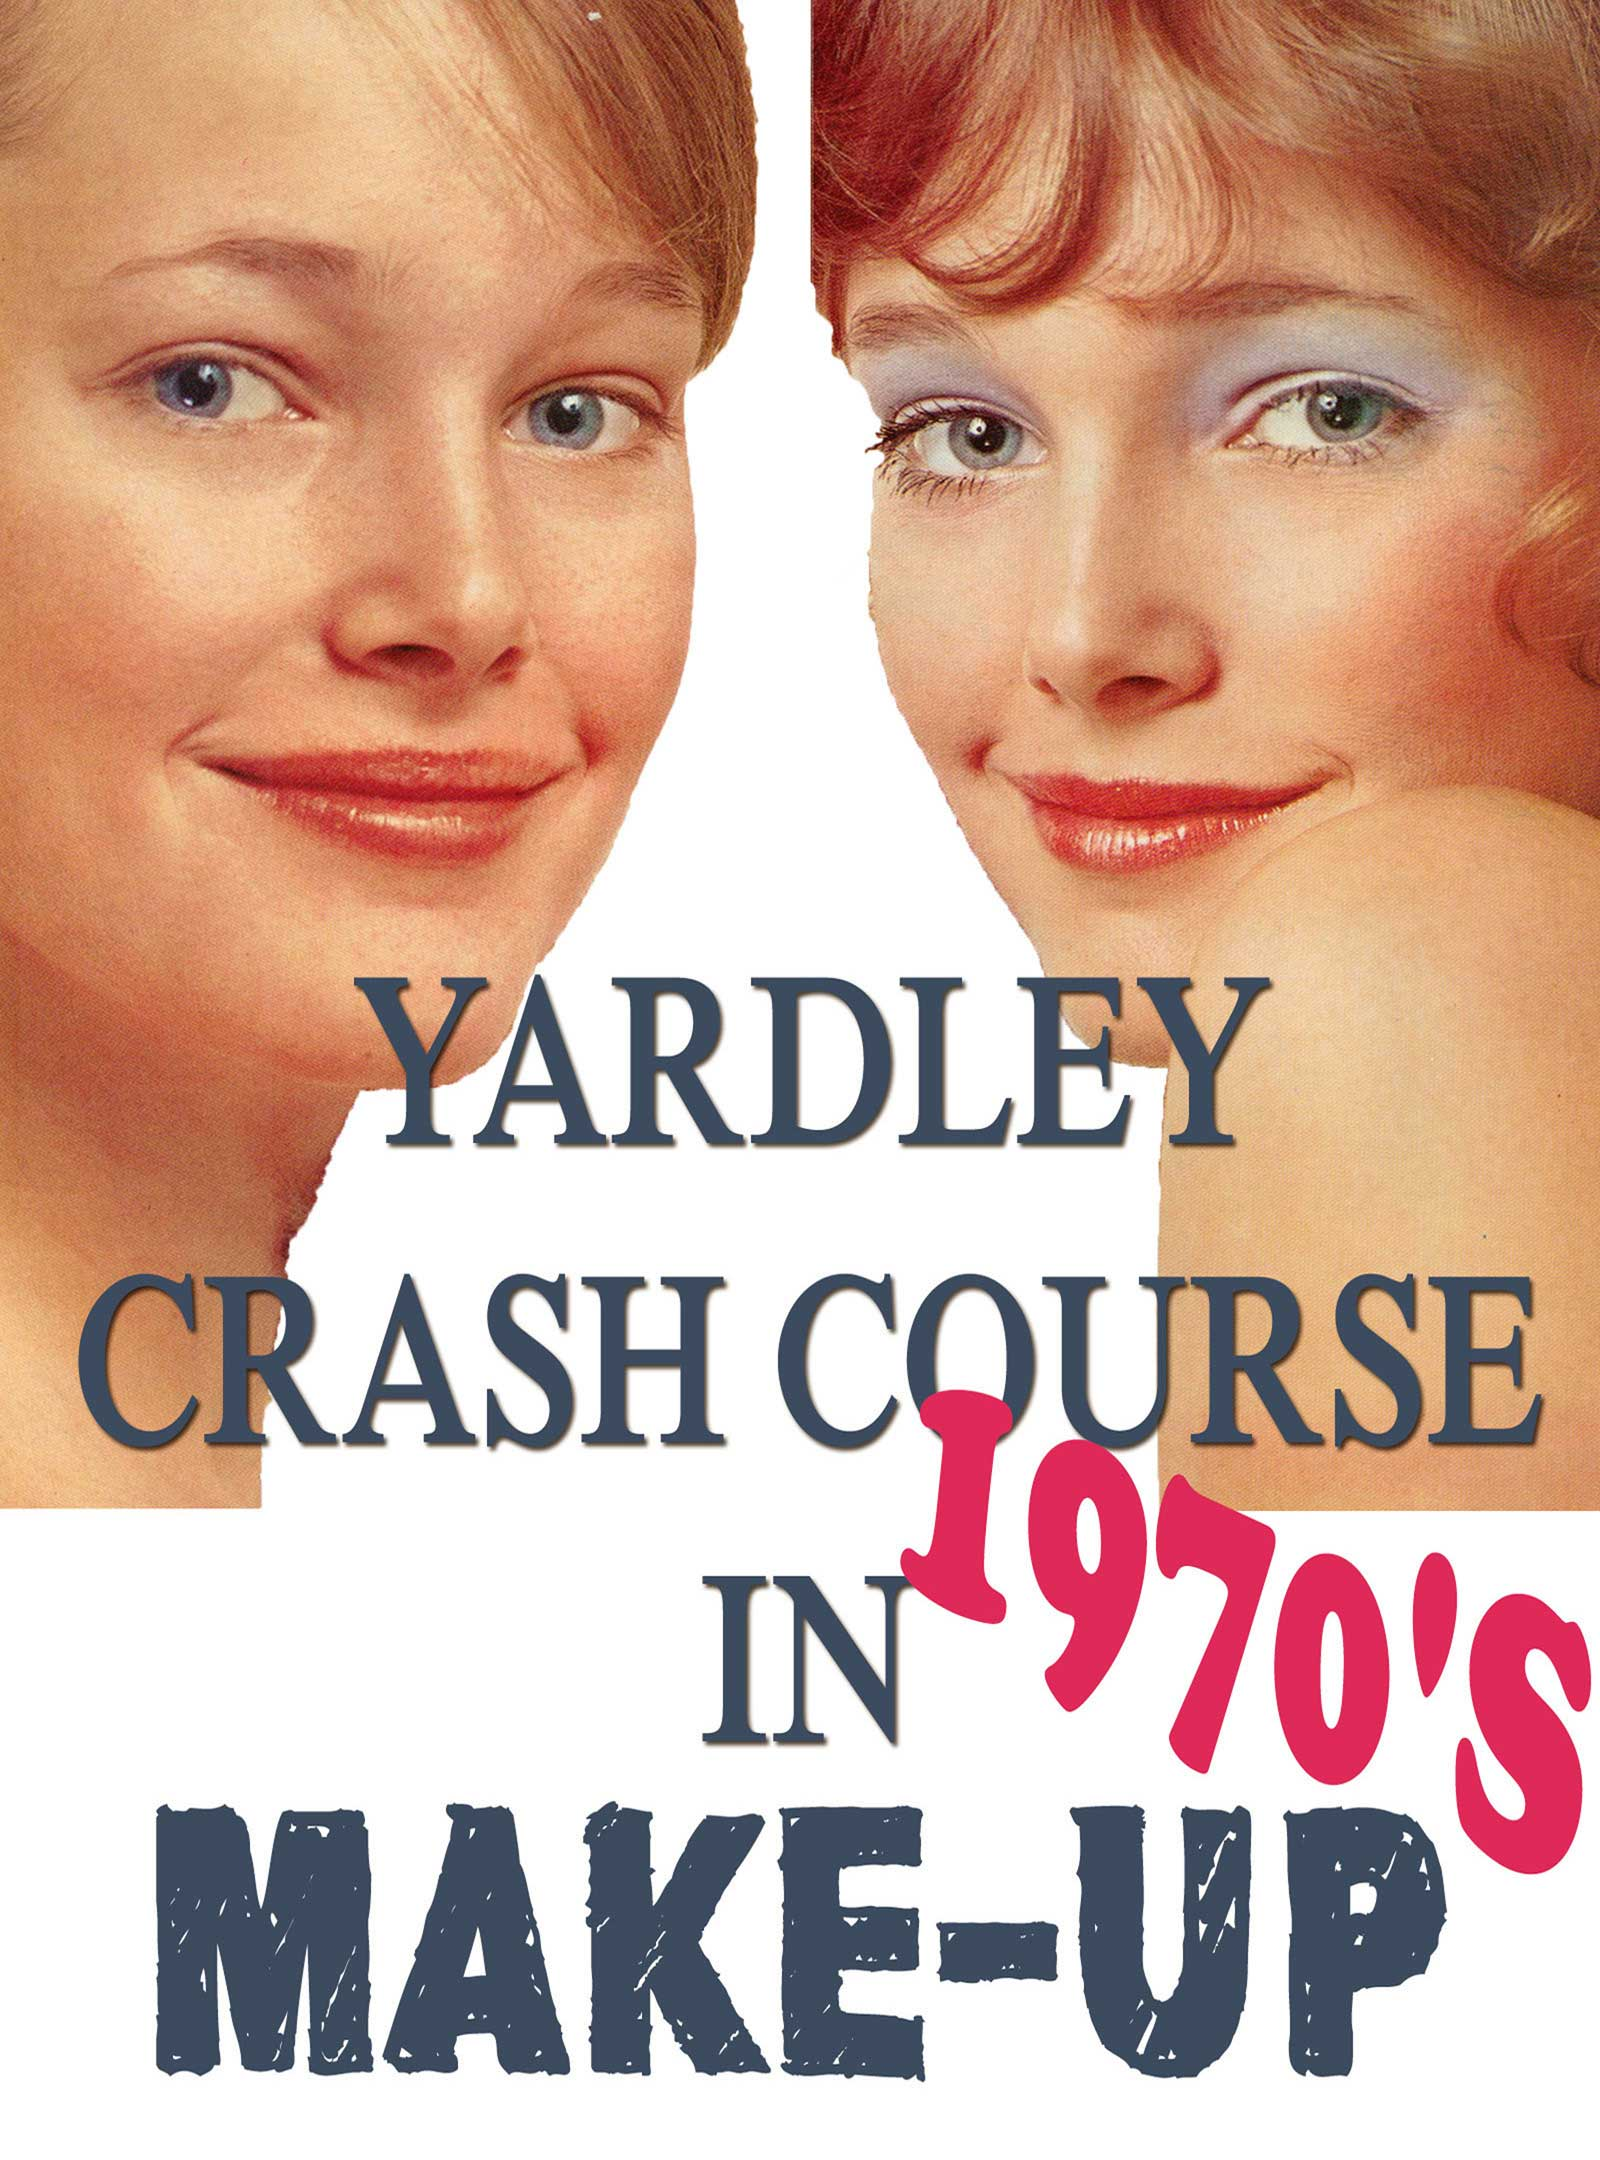 Free 1970s Vintage Makeup Guide with Lucy Angle-